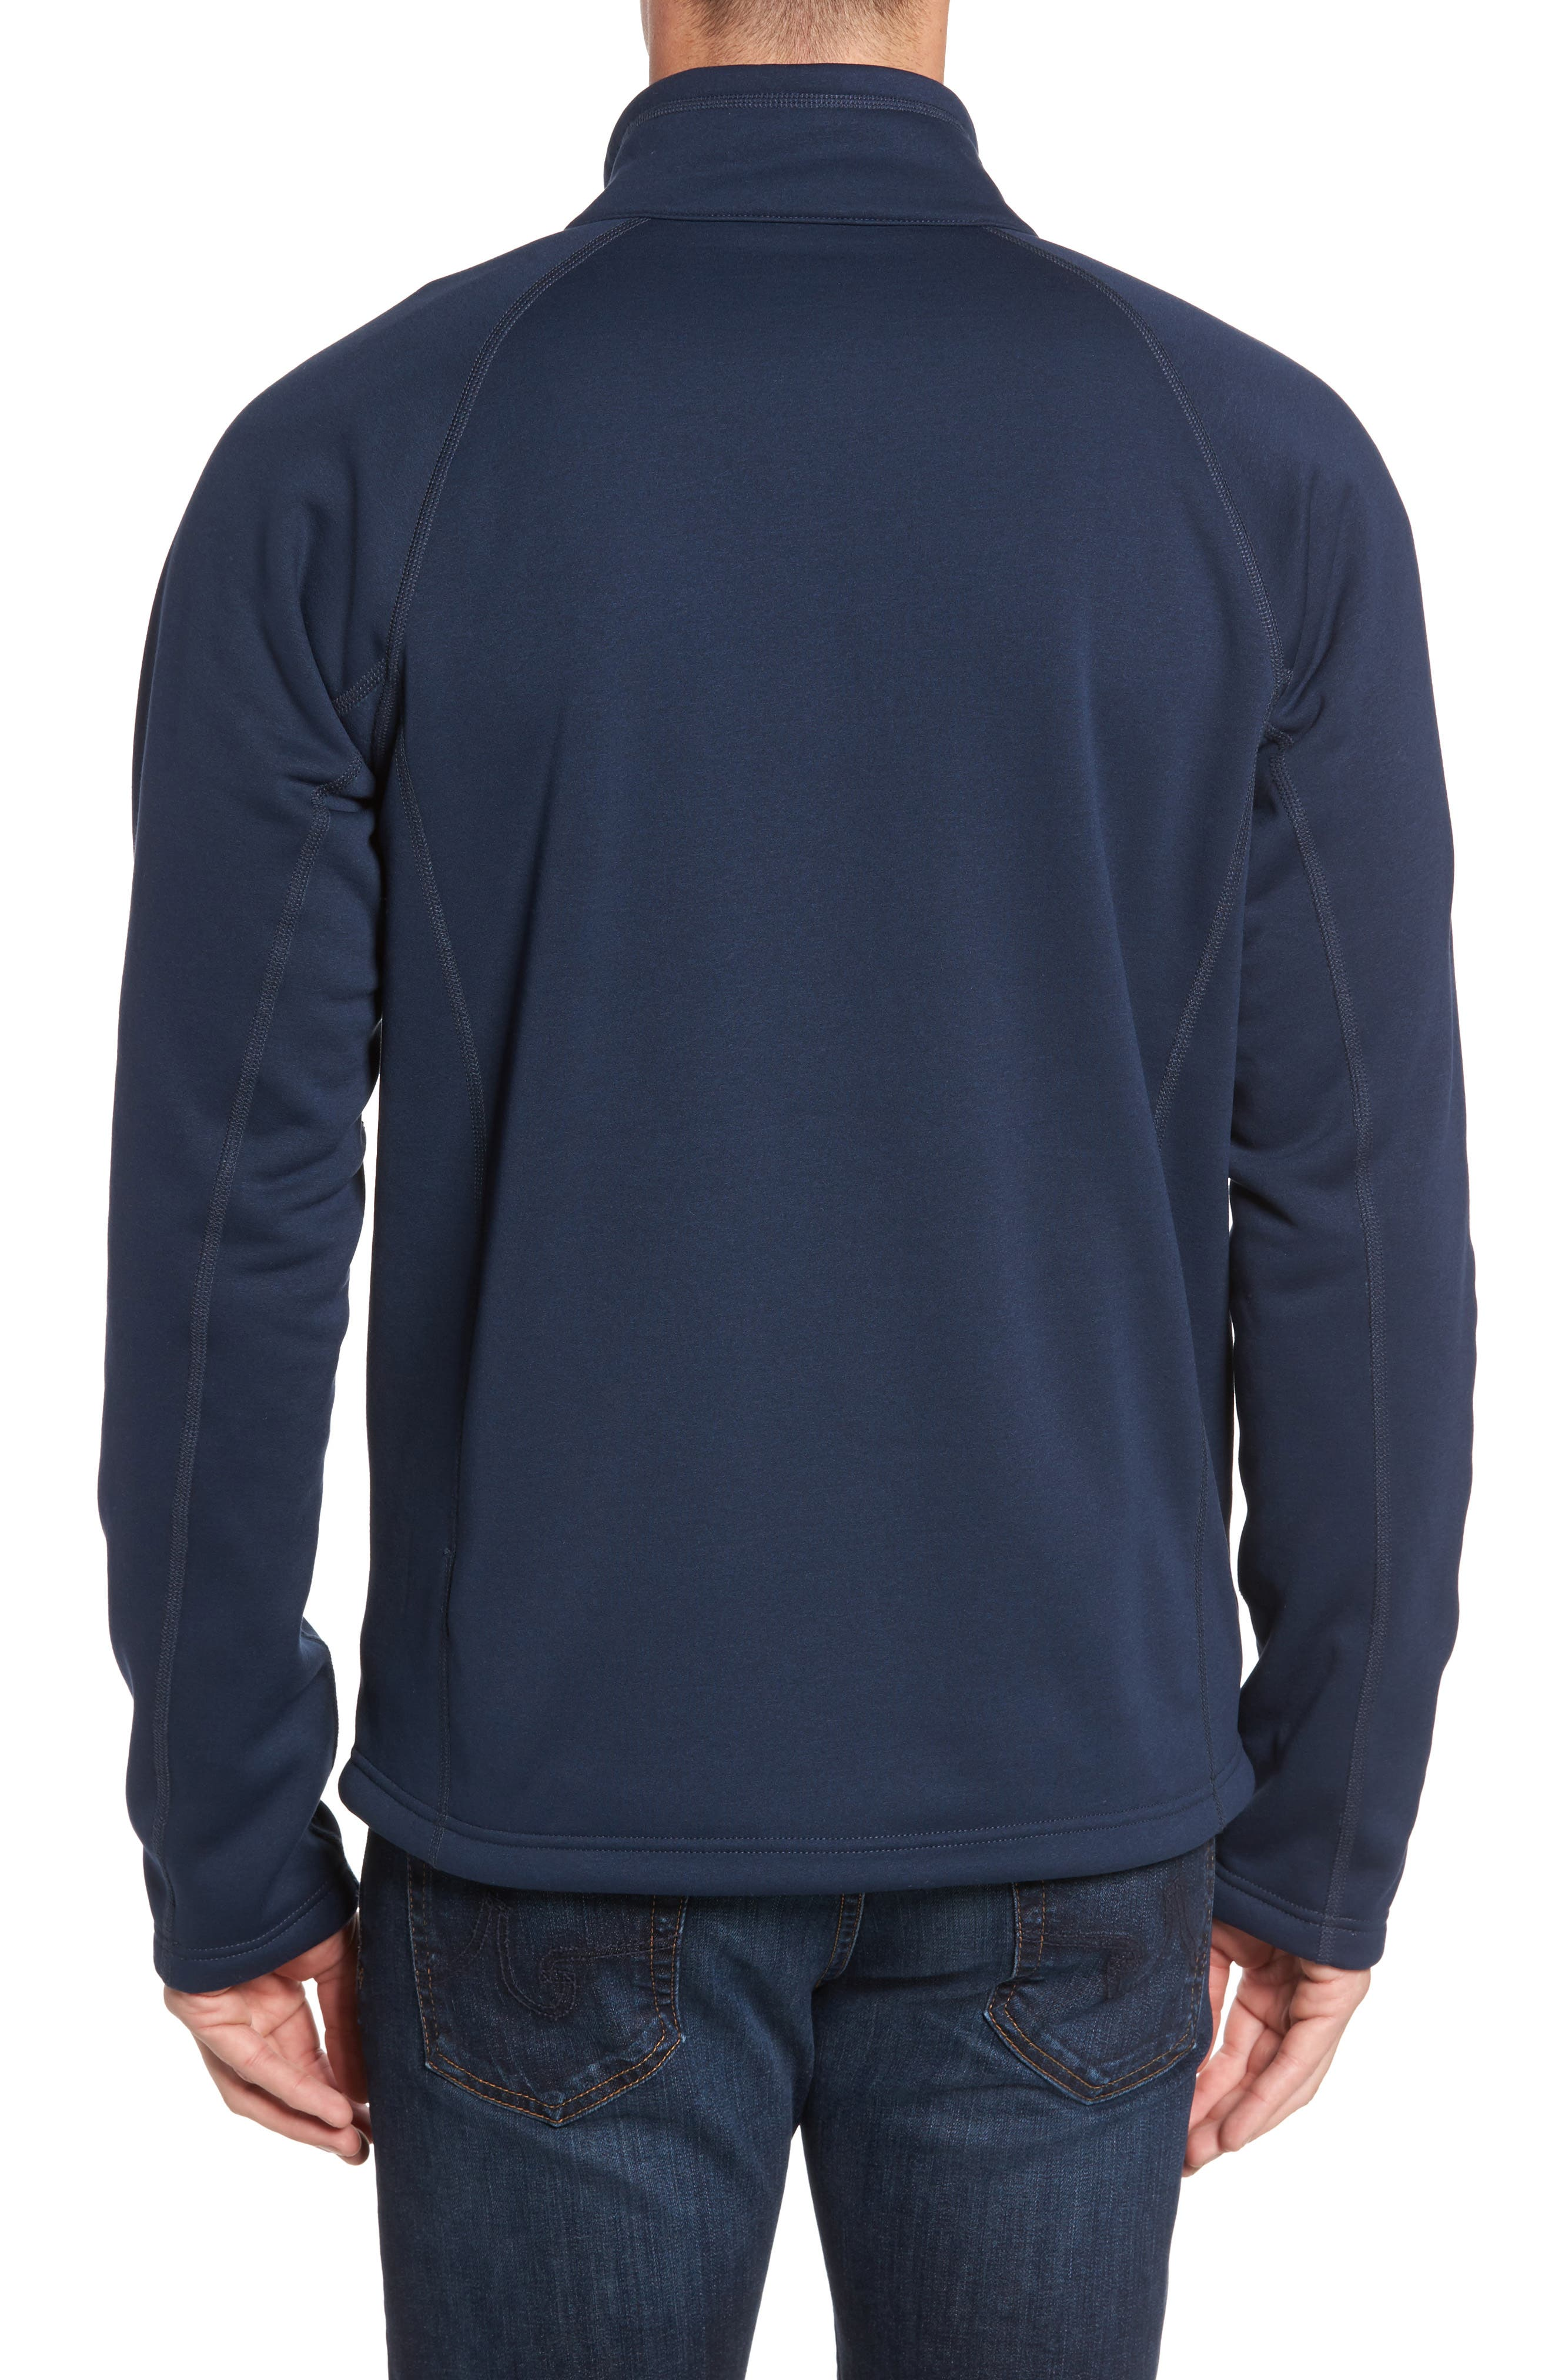 Timber Zip Jacket,                             Alternate thumbnail 5, color,